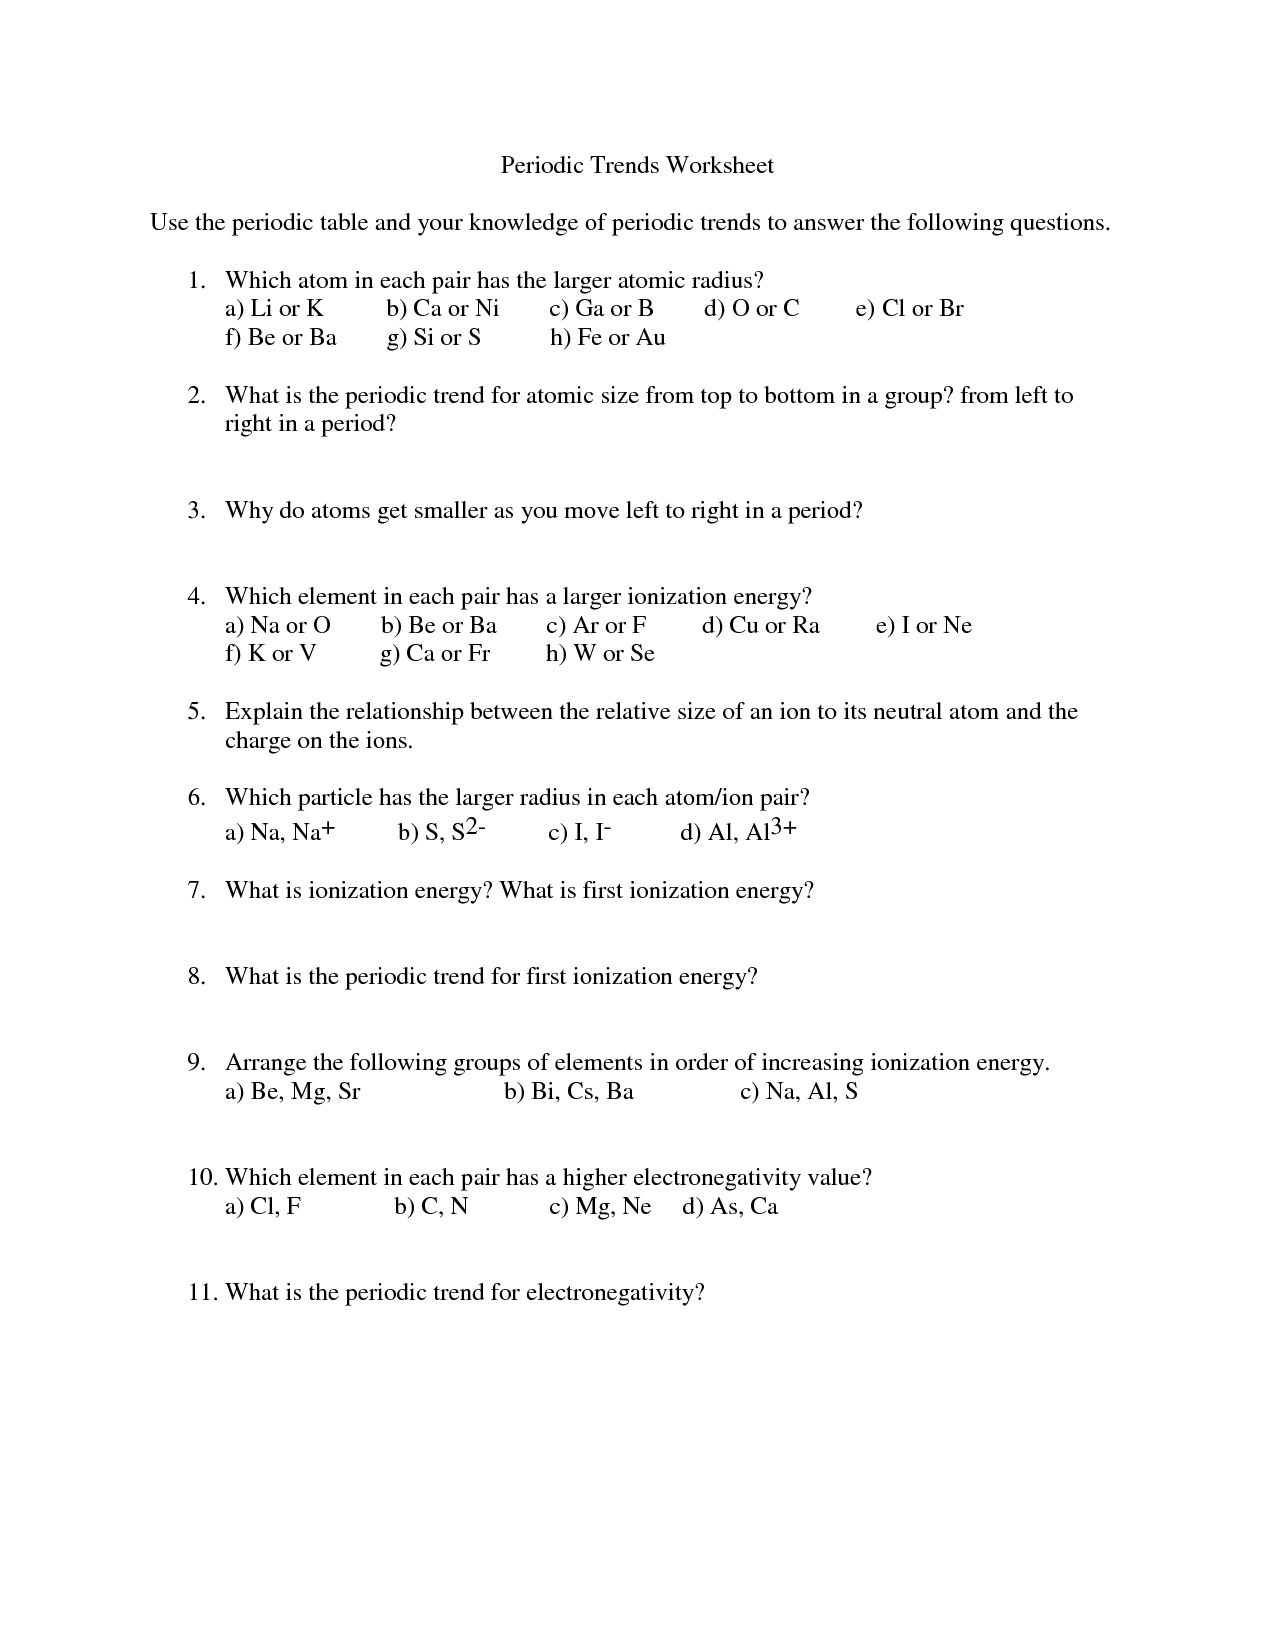 Worksheet Periodic Table Trends Answer Key